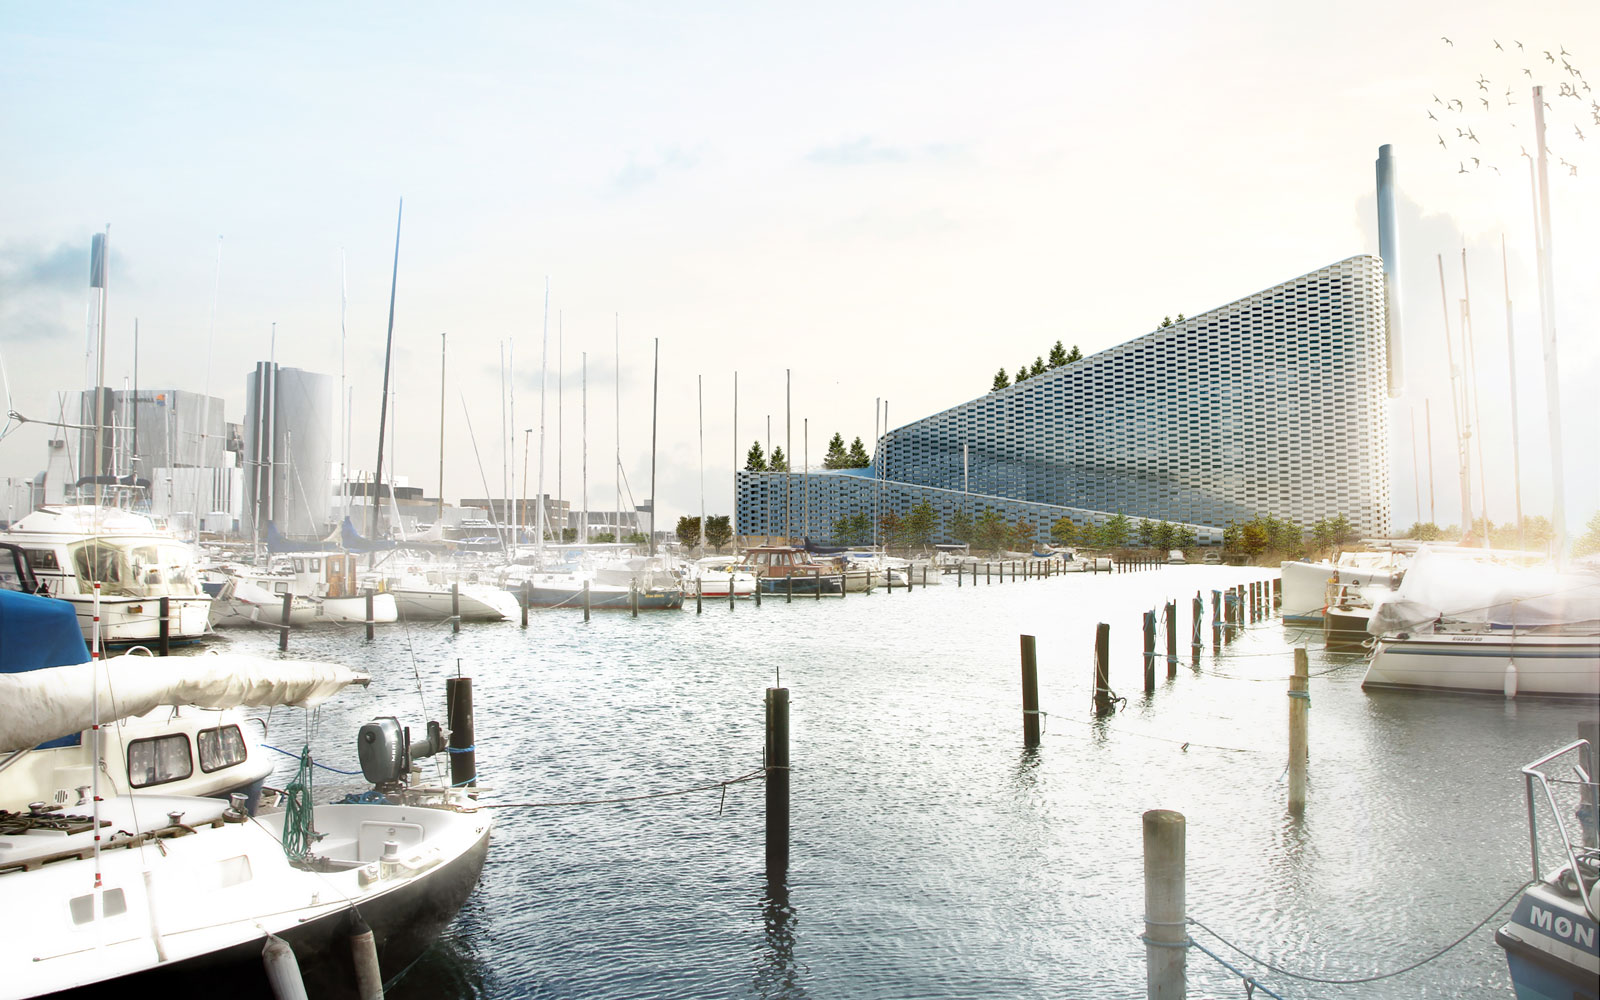 Copenhagen is putting a ski slope on top of a green power plant.